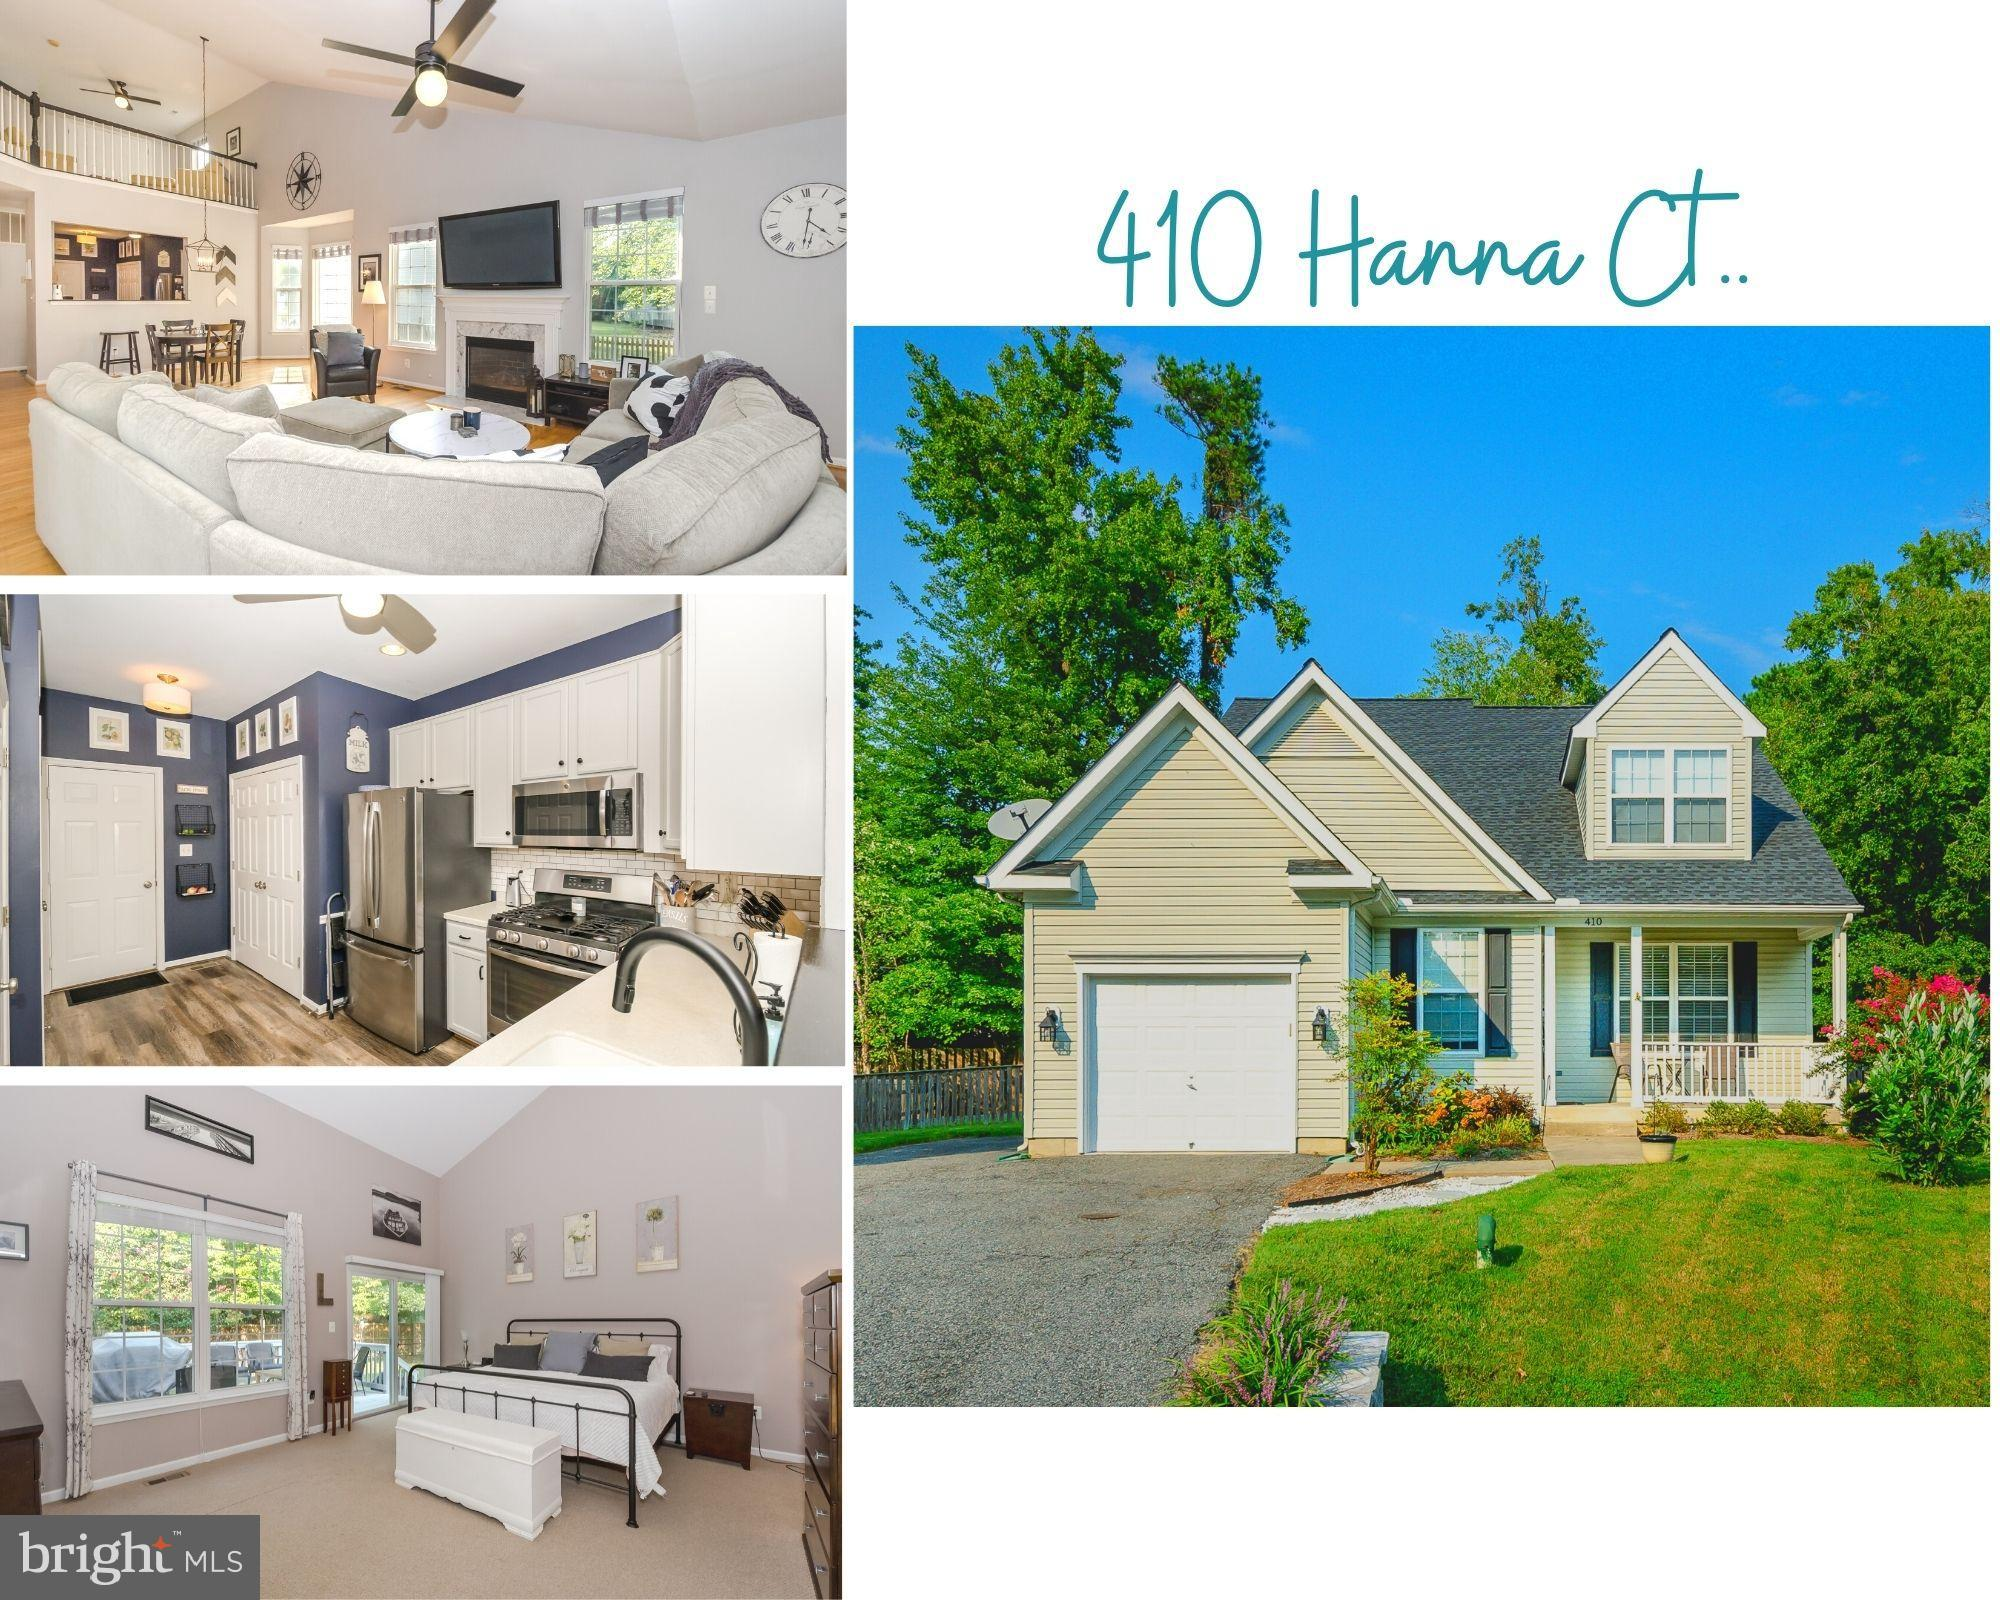 Welcome to 410 Hanna Ct.! Located in a quiet cul-de-sac in the sought-after community of Clayborne W